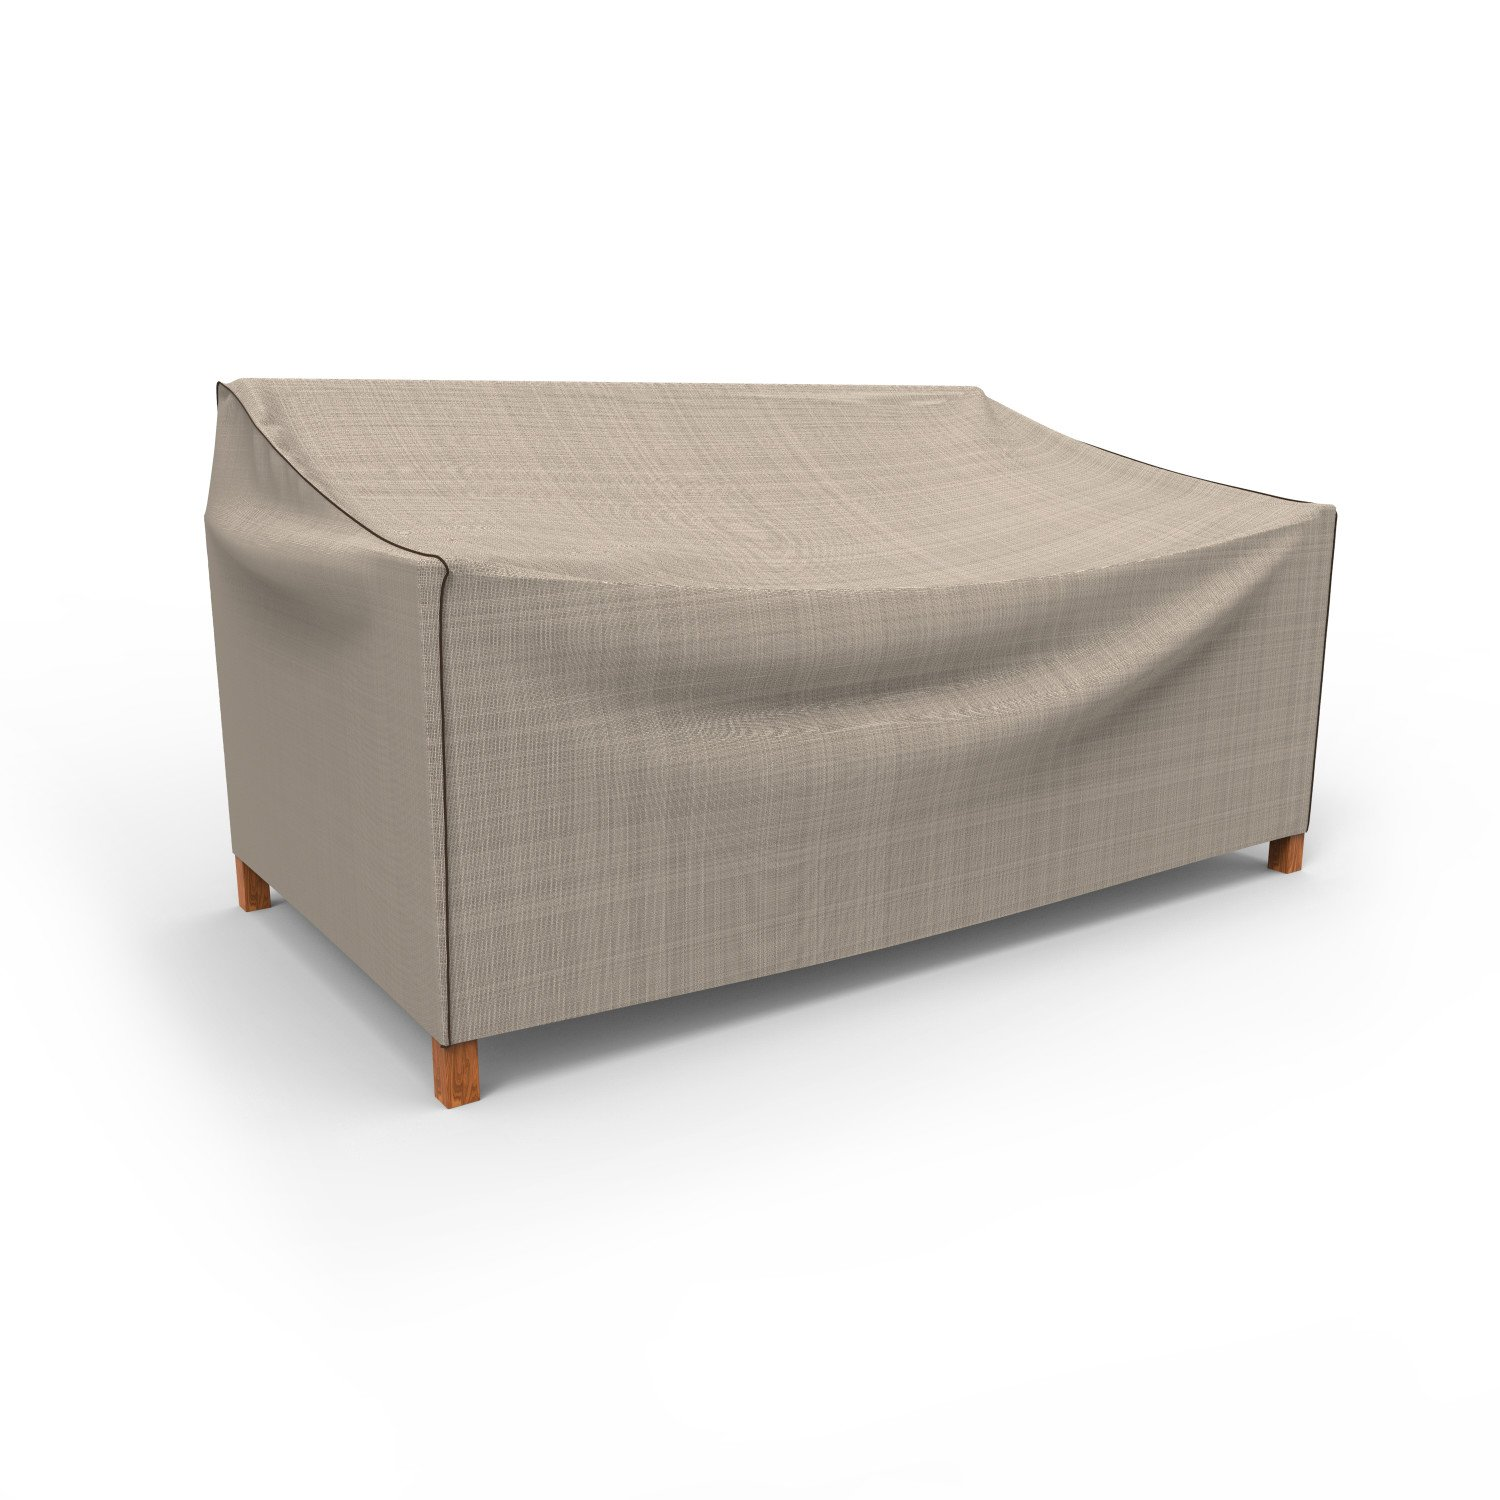 Budge English Garden Outdoor Patio Loveseat Cover, Medium (Tan Tweed) by Budge